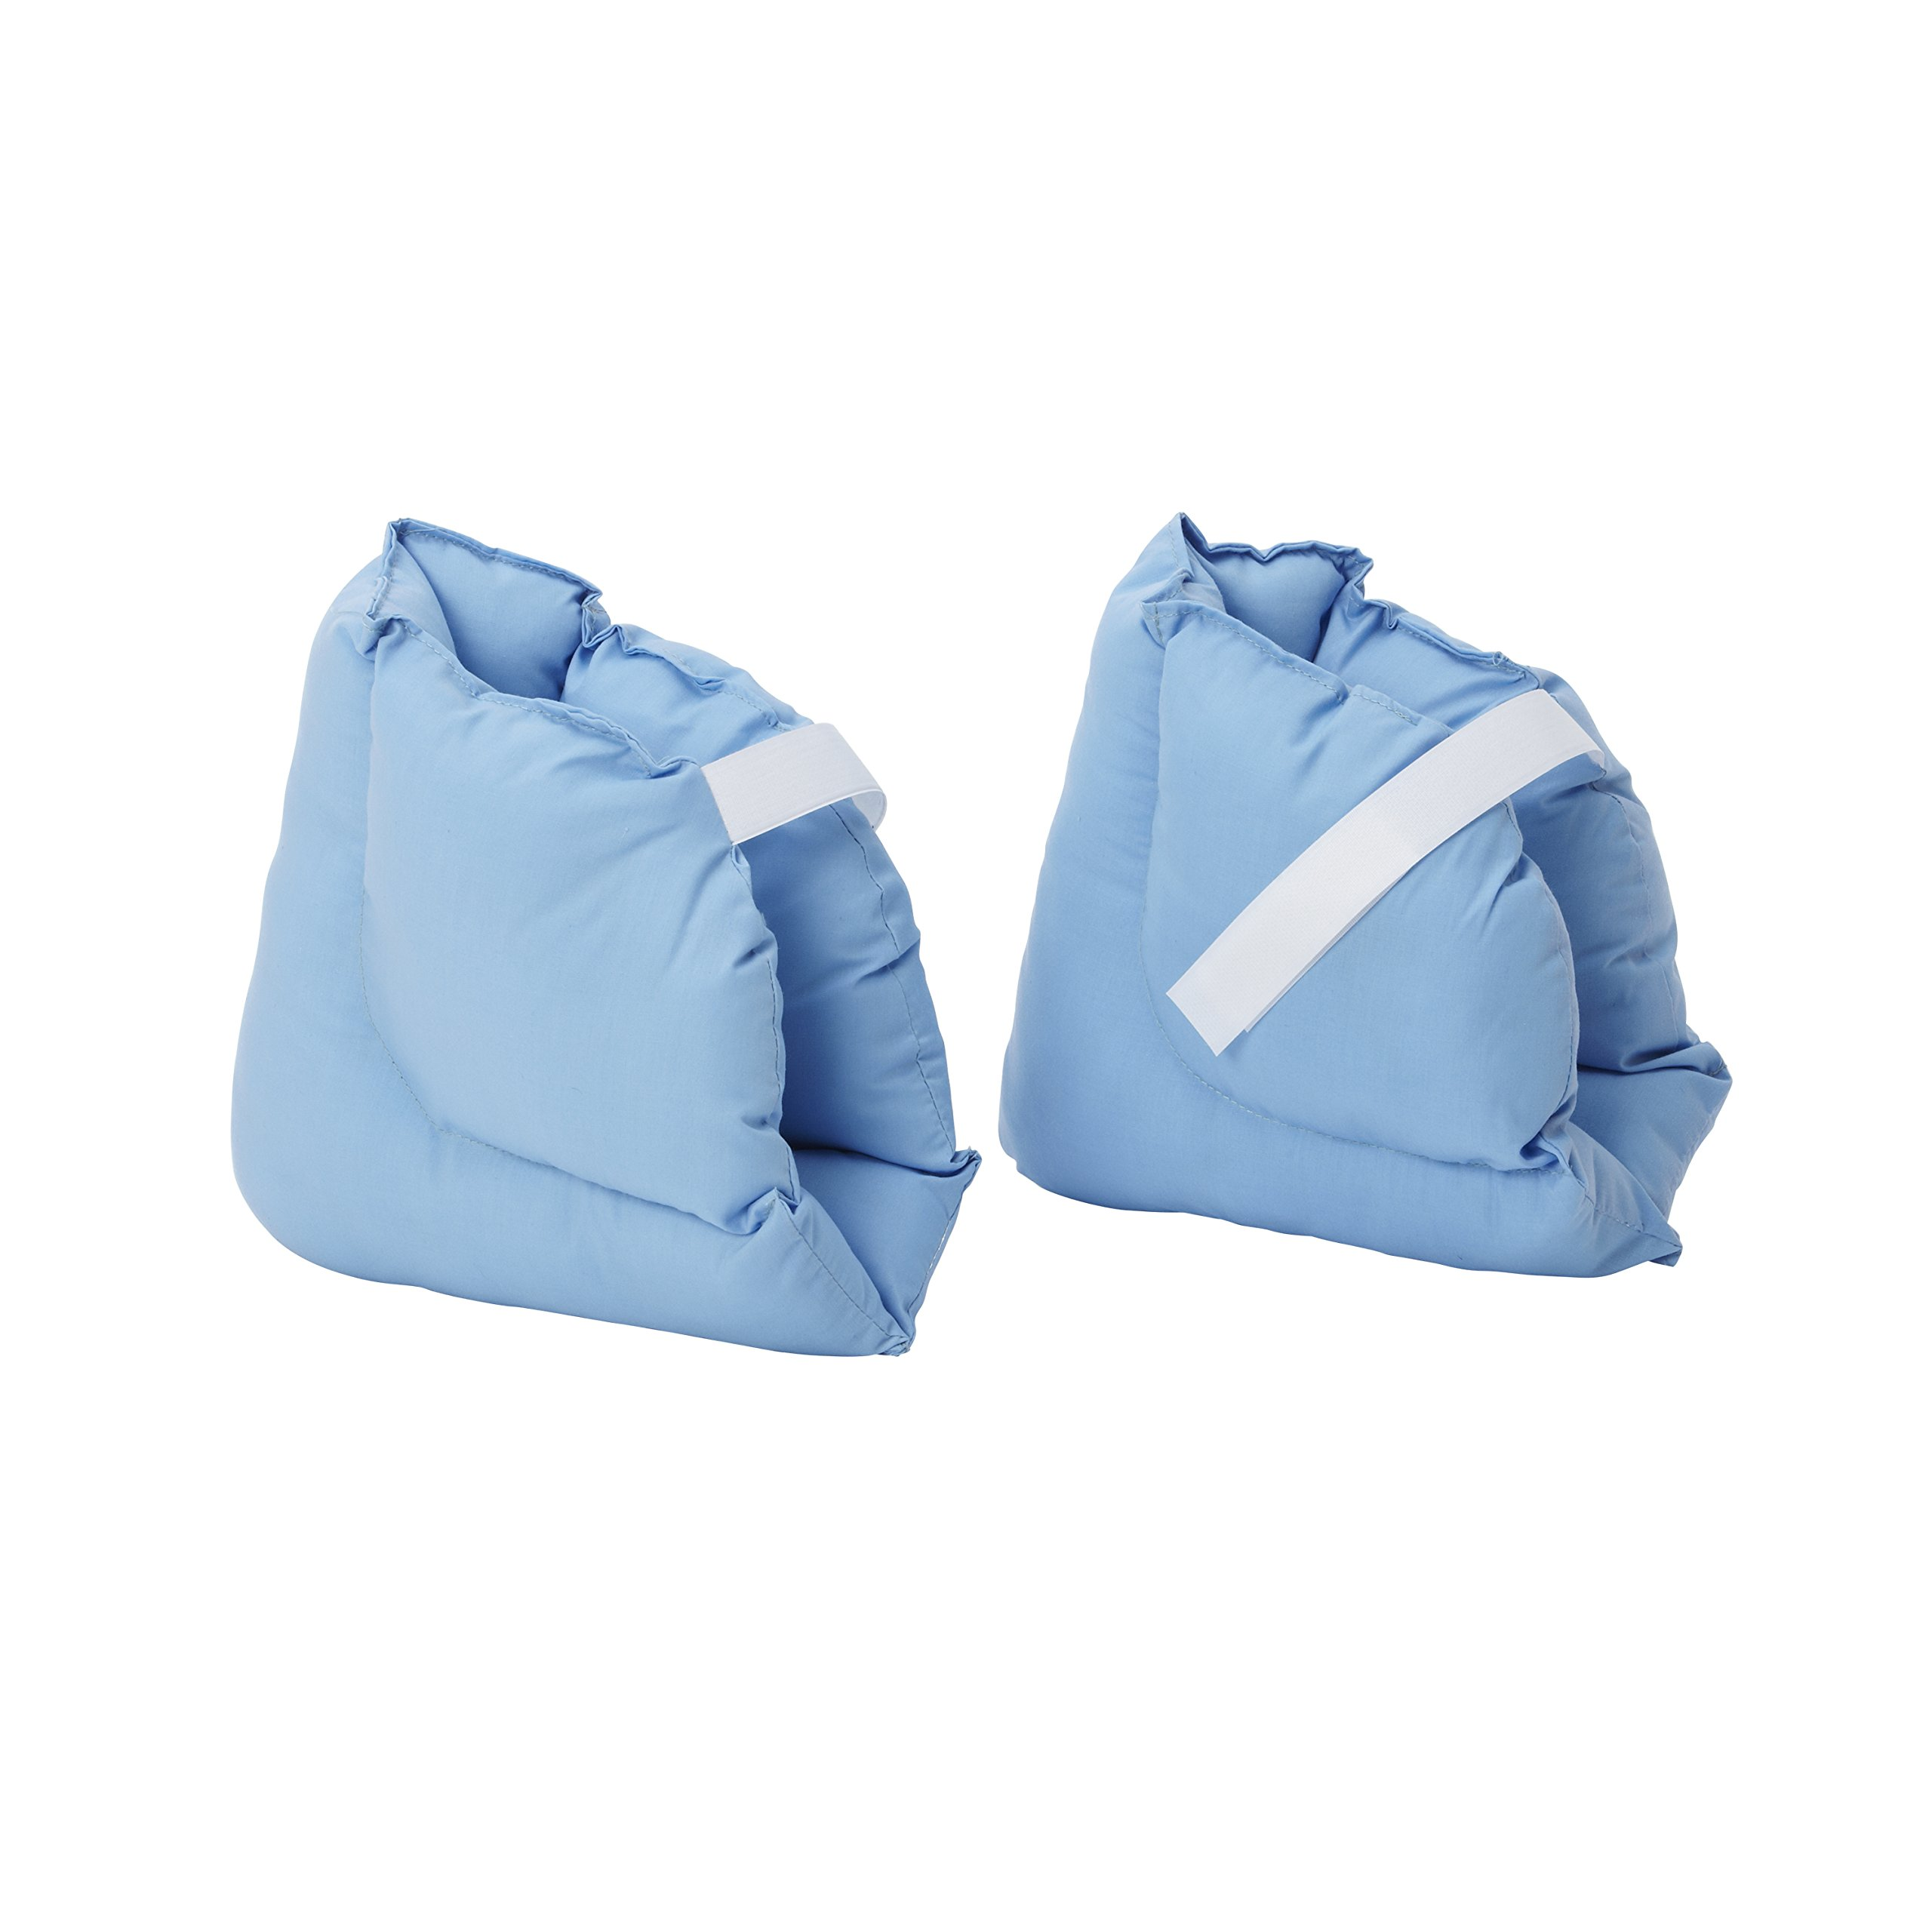 DMI Heel Cushions, Heel Protectors, Heel Protection for Soreness and Healing, One Pair, Blue